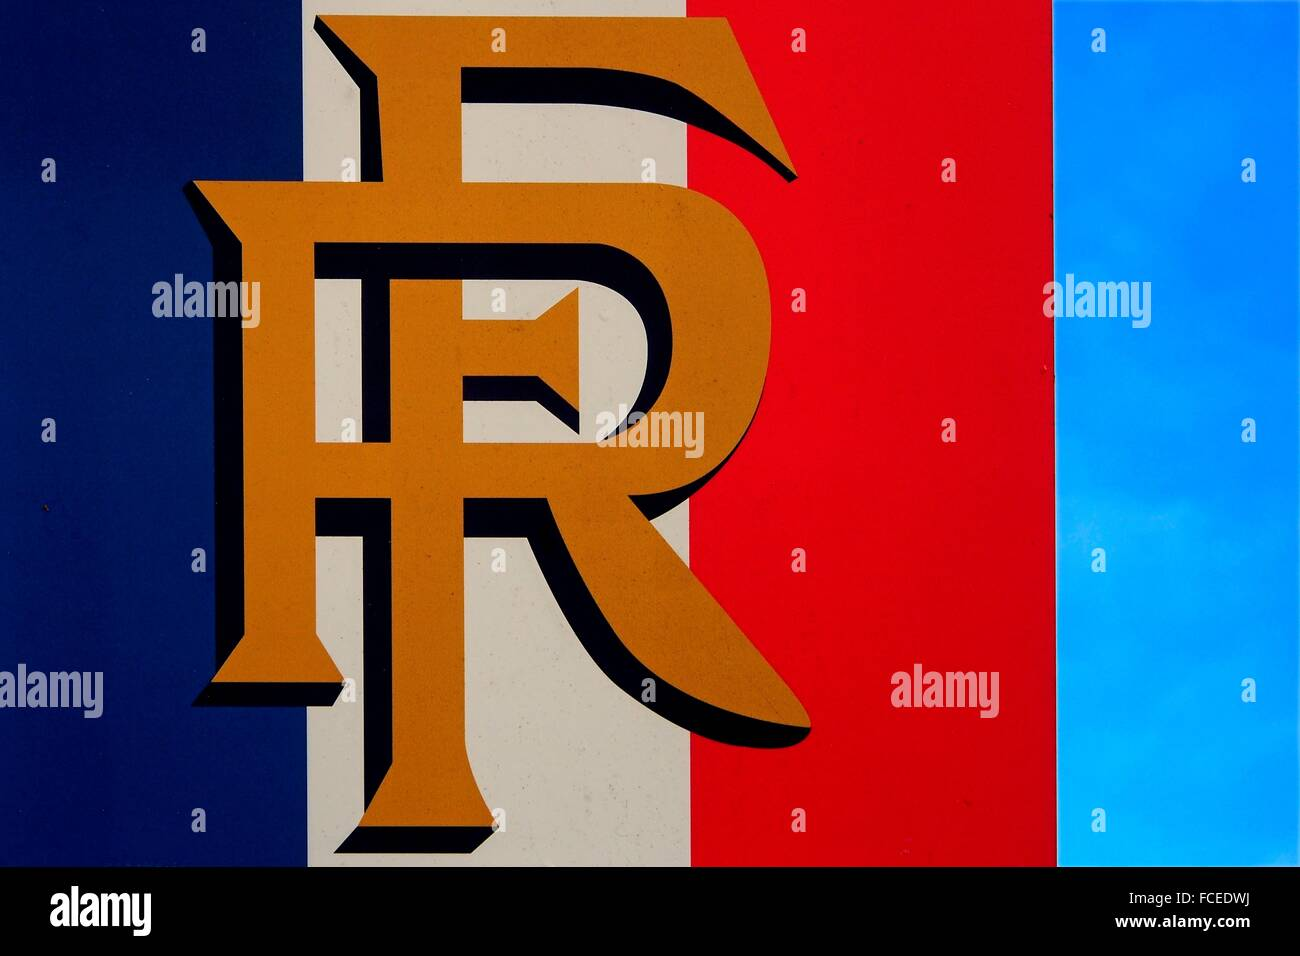 france blue white and red the 3 colors of the french flag and